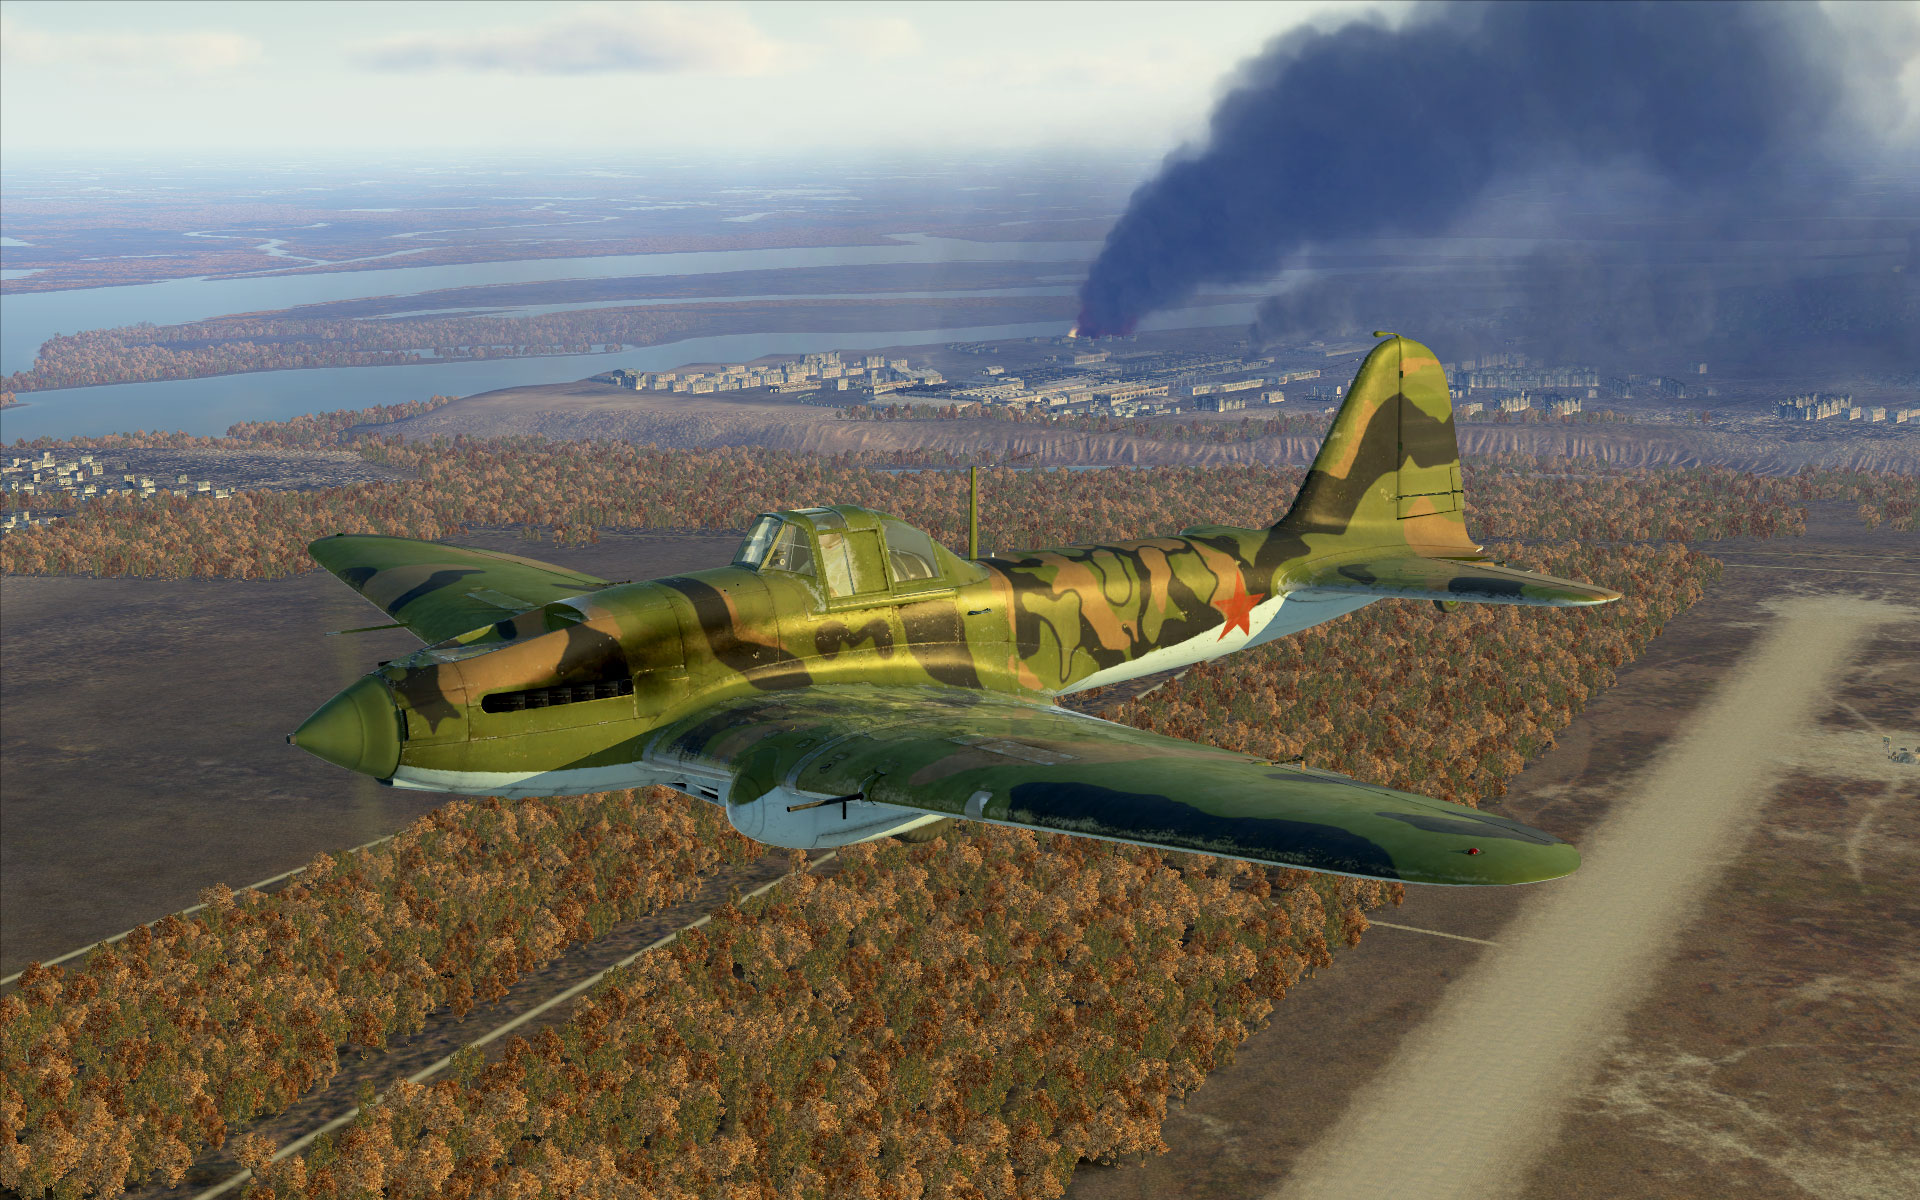 War thunder lose every game hacks how to get past the gatekeeper